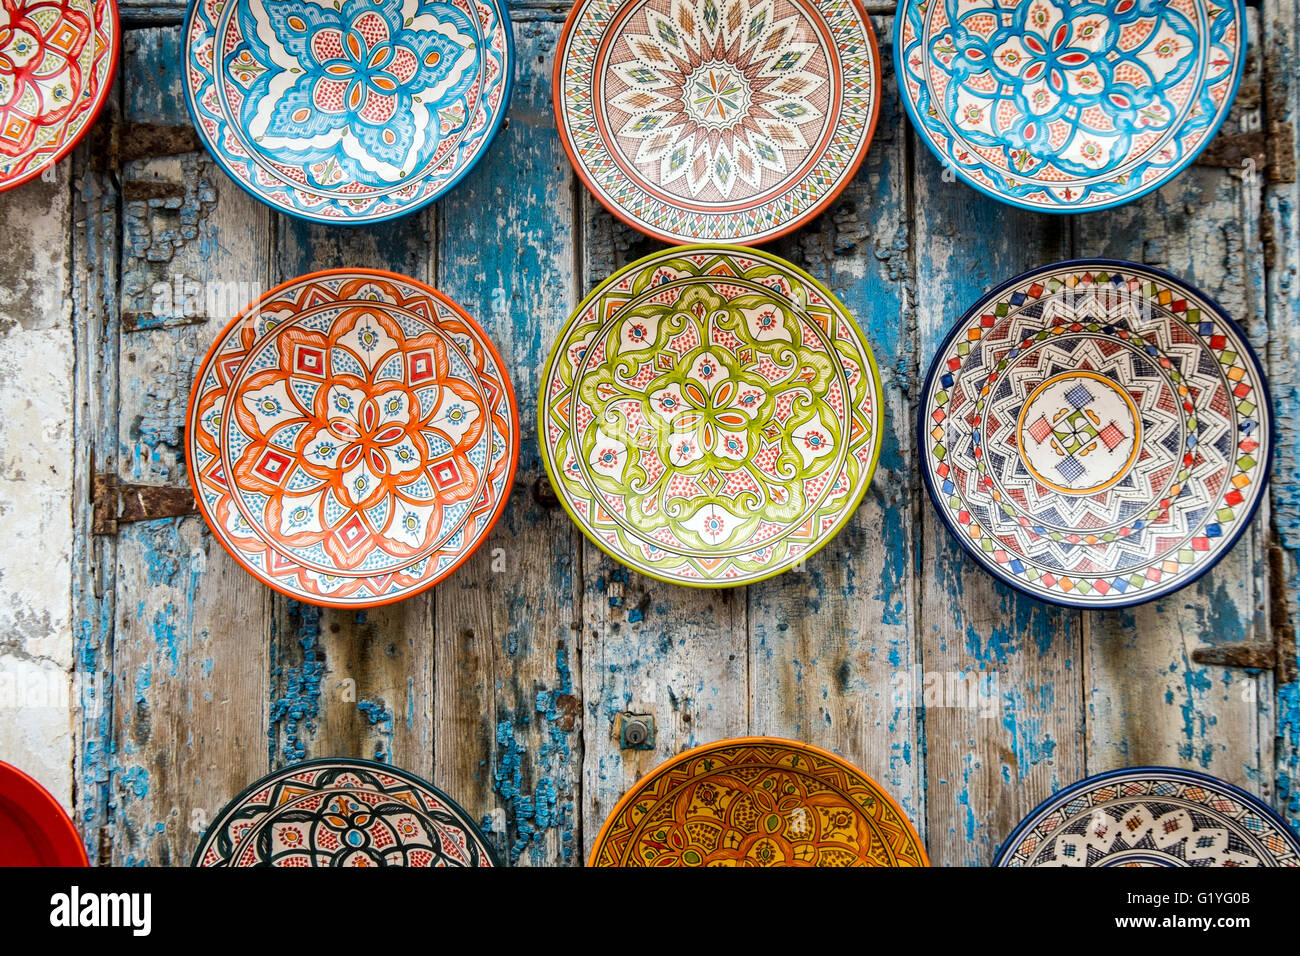 souvenir decorative plates on a wall in Essaouira Morocco & souvenir decorative plates on a wall in Essaouira Morocco Stock ...